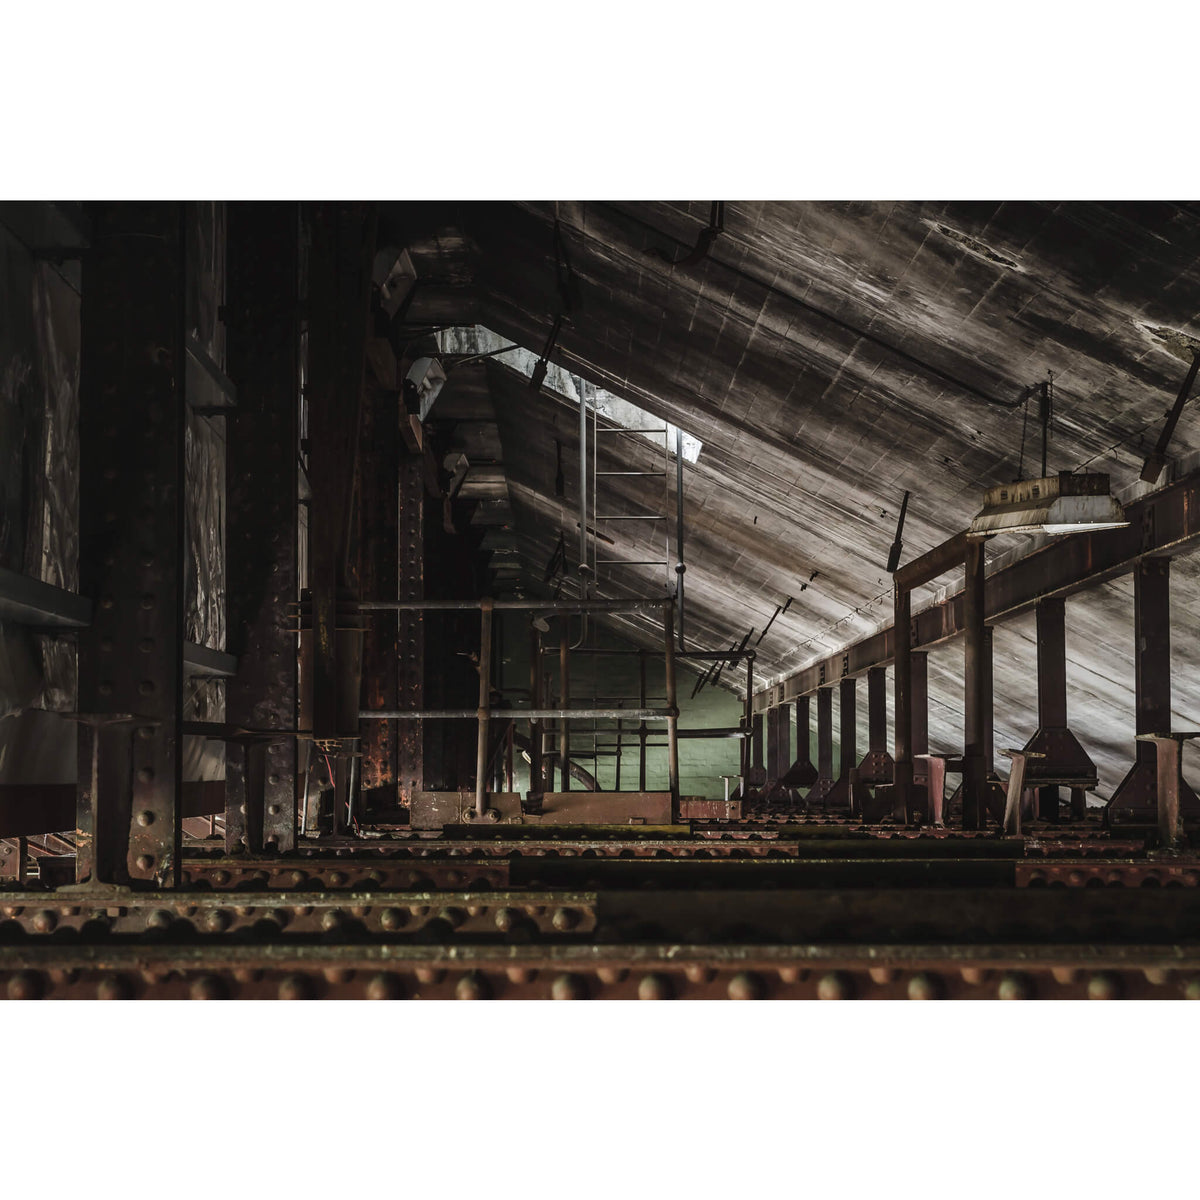 Rafters | West Ryde Pumping Station Fine Art Print - Lost Collective Shop